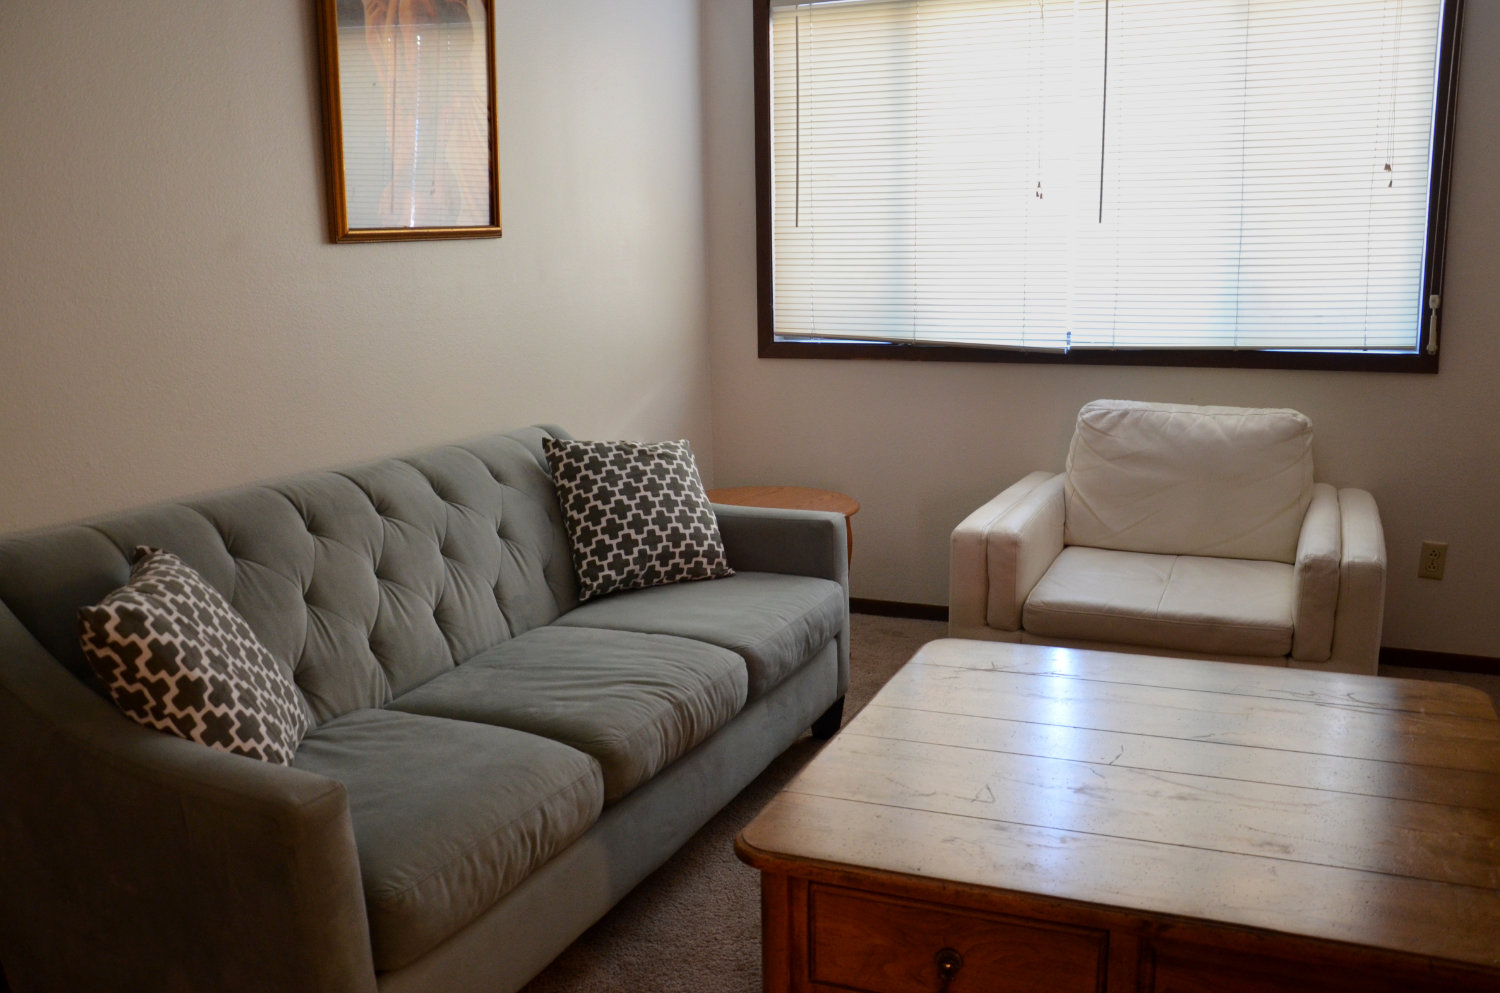 Beautiful donated couch, chair, and coffee table perfect for this space